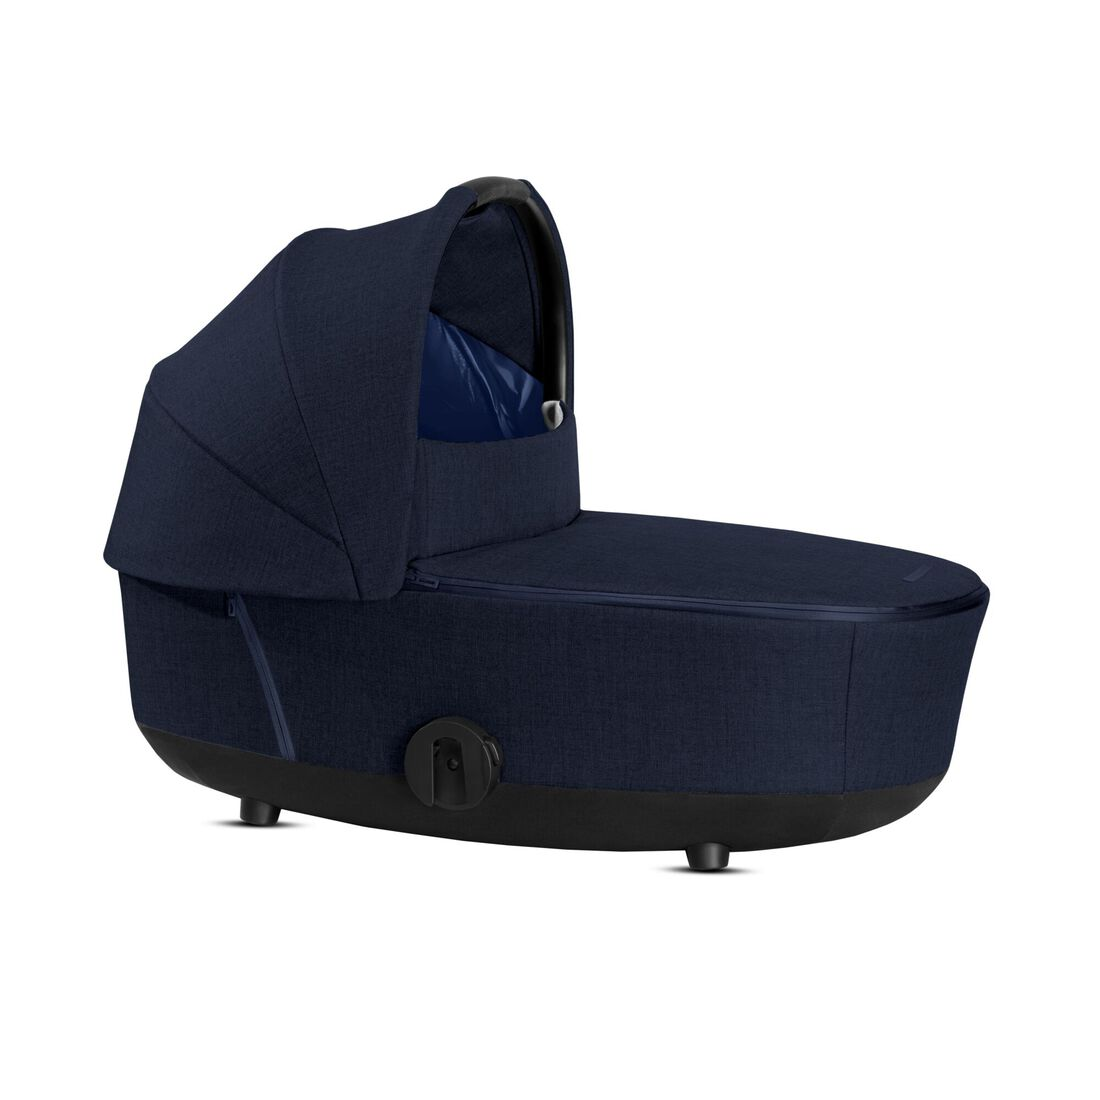 CYBEX Mios Lux Carry Cot - Midnight Blue Plus in Midnight Blue Plus large image number 1